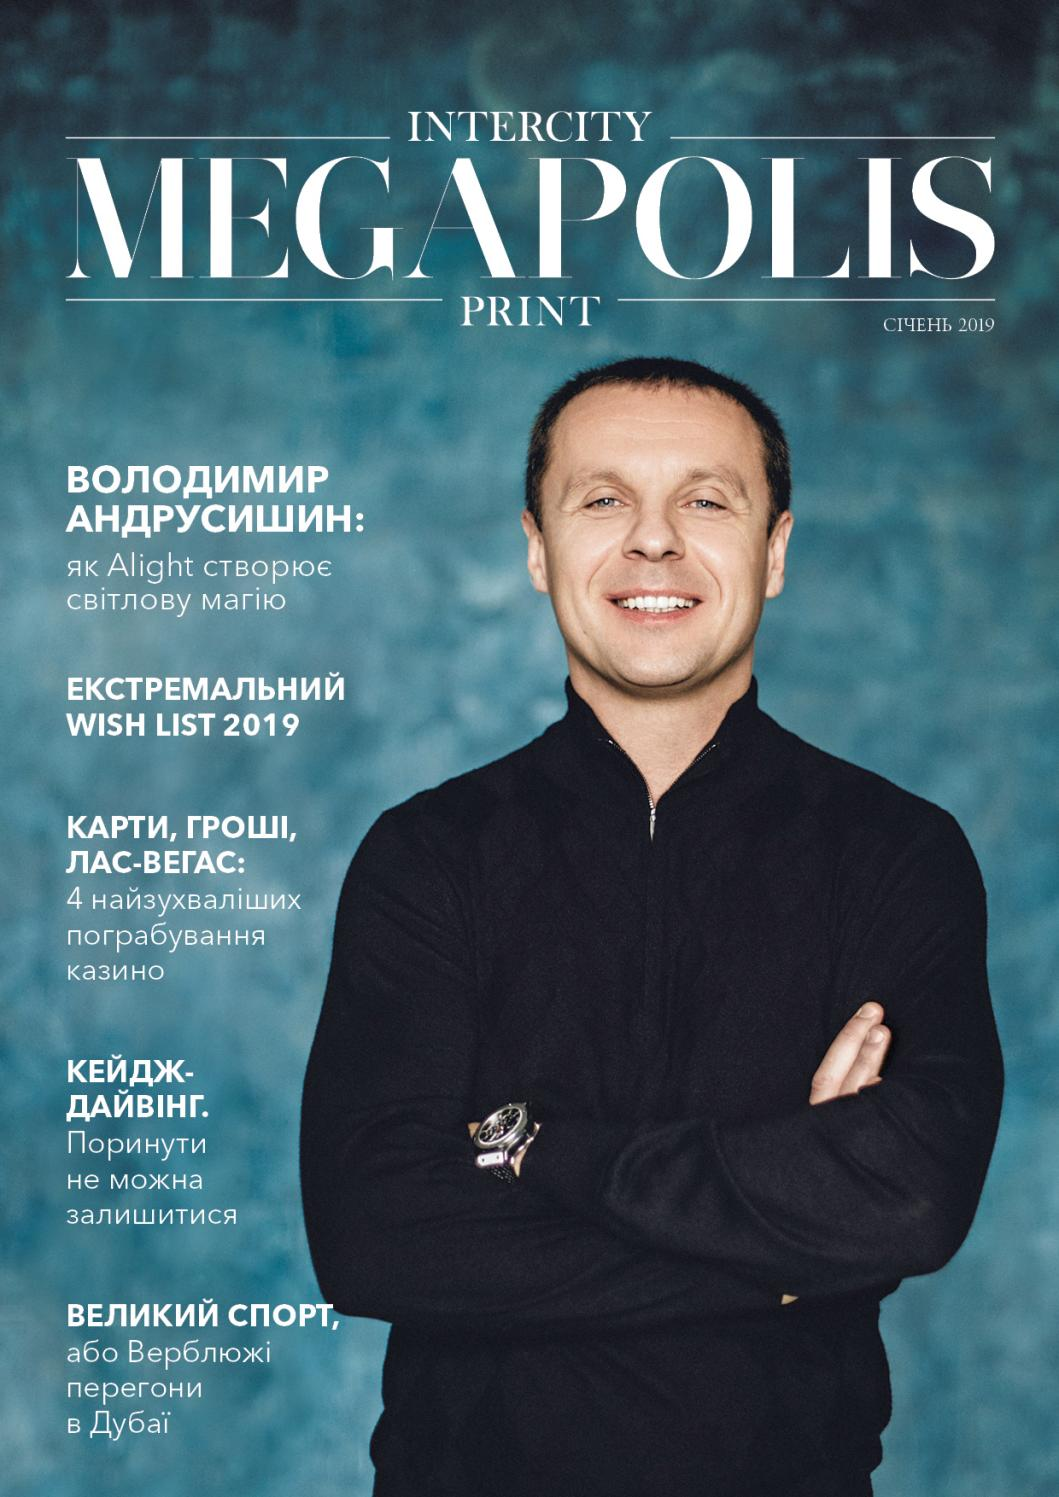 Intercity Megapolis print January 2019 by Intercity Onboard Magazine - issuu b98f4bf61dcb2